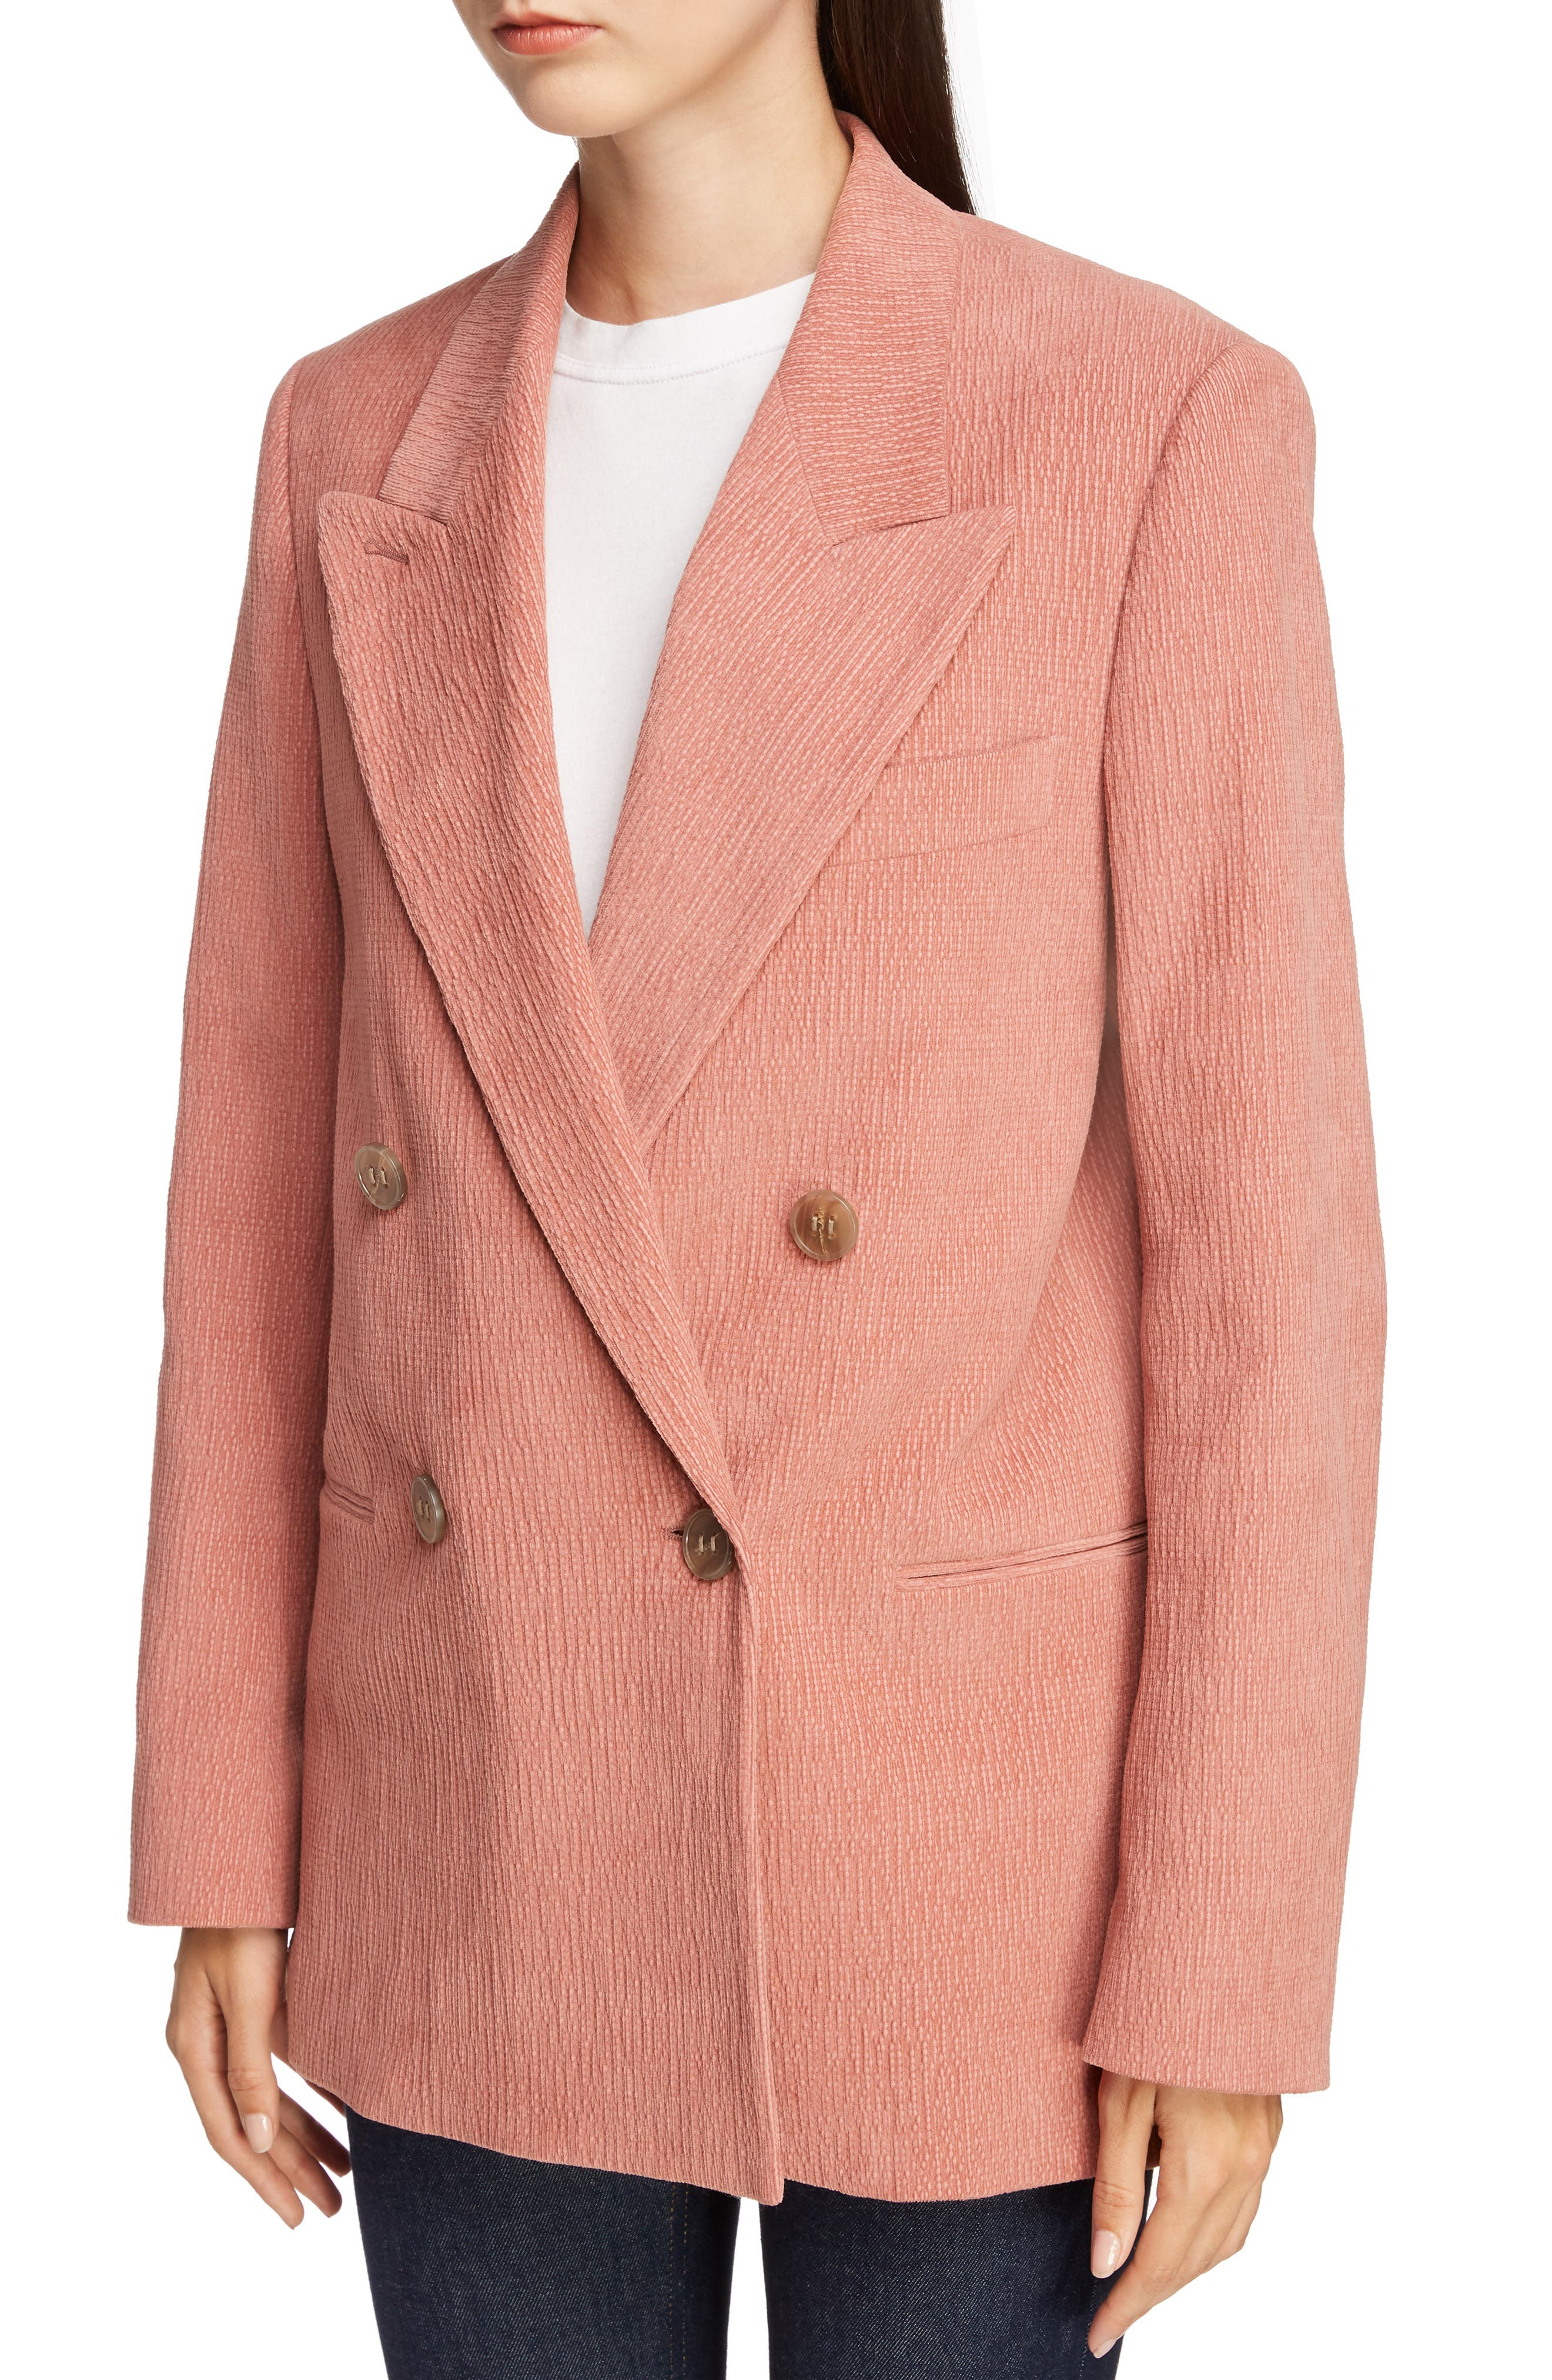 ACNE STUDIOS,                             Corduroy Double Breasted Blazer,                             Alternate thumbnail 4, color,                             OLD PINK